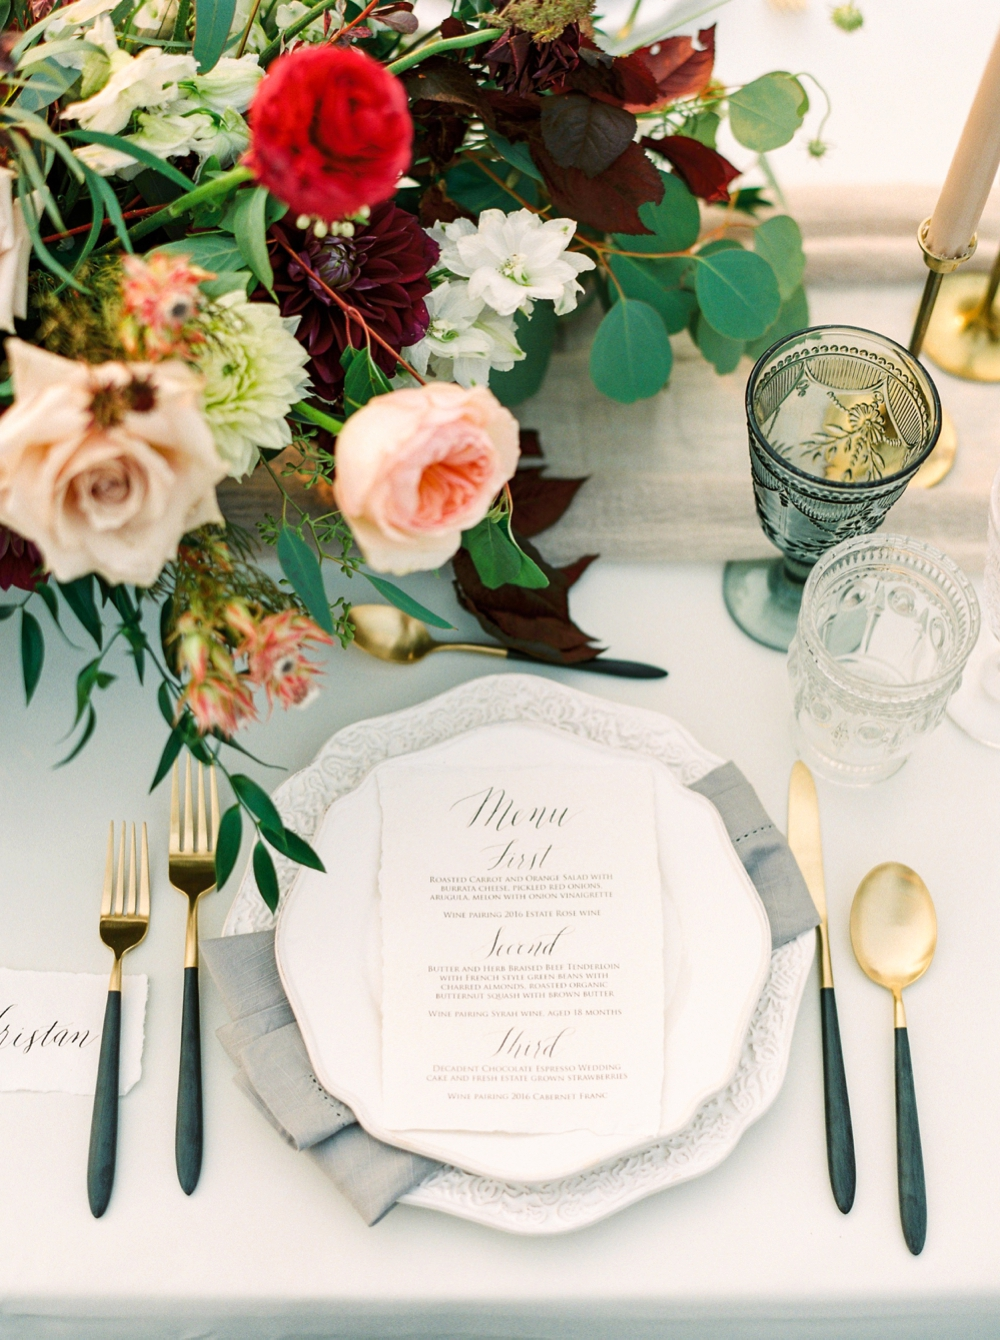 wedding table decor | Painted Rock Winery | Penticton wedding photographer | Kelowna Wedding photography | Okanagan Wedding photographers | Justine Milton fine art film